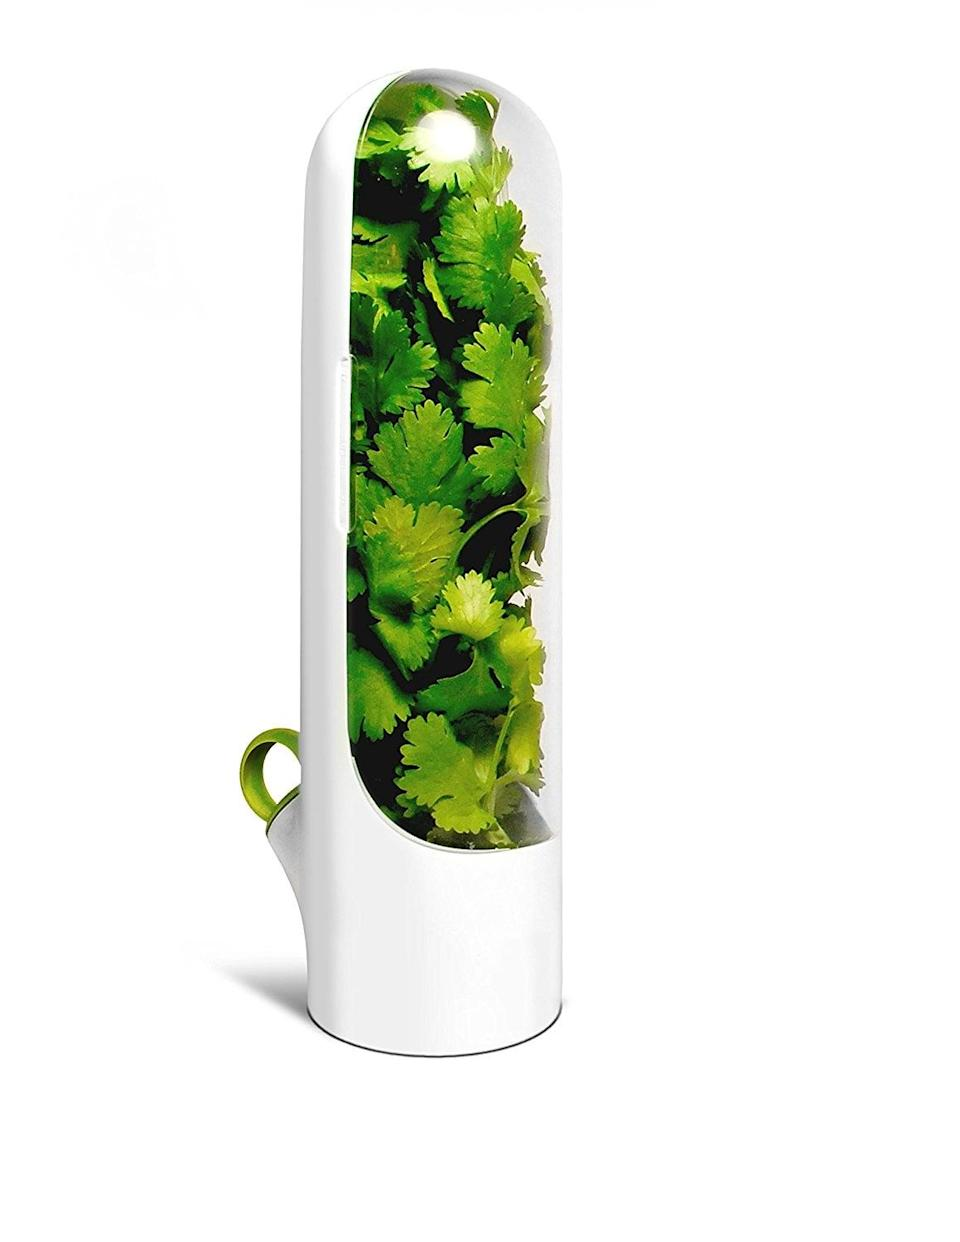 <p>Make sure your herbs stay as fresh as possible by storing them in this <span>Herb Saver Best Keeper </span> ($21). Simply refill it with water every three to five days, and it will last longer.</p>